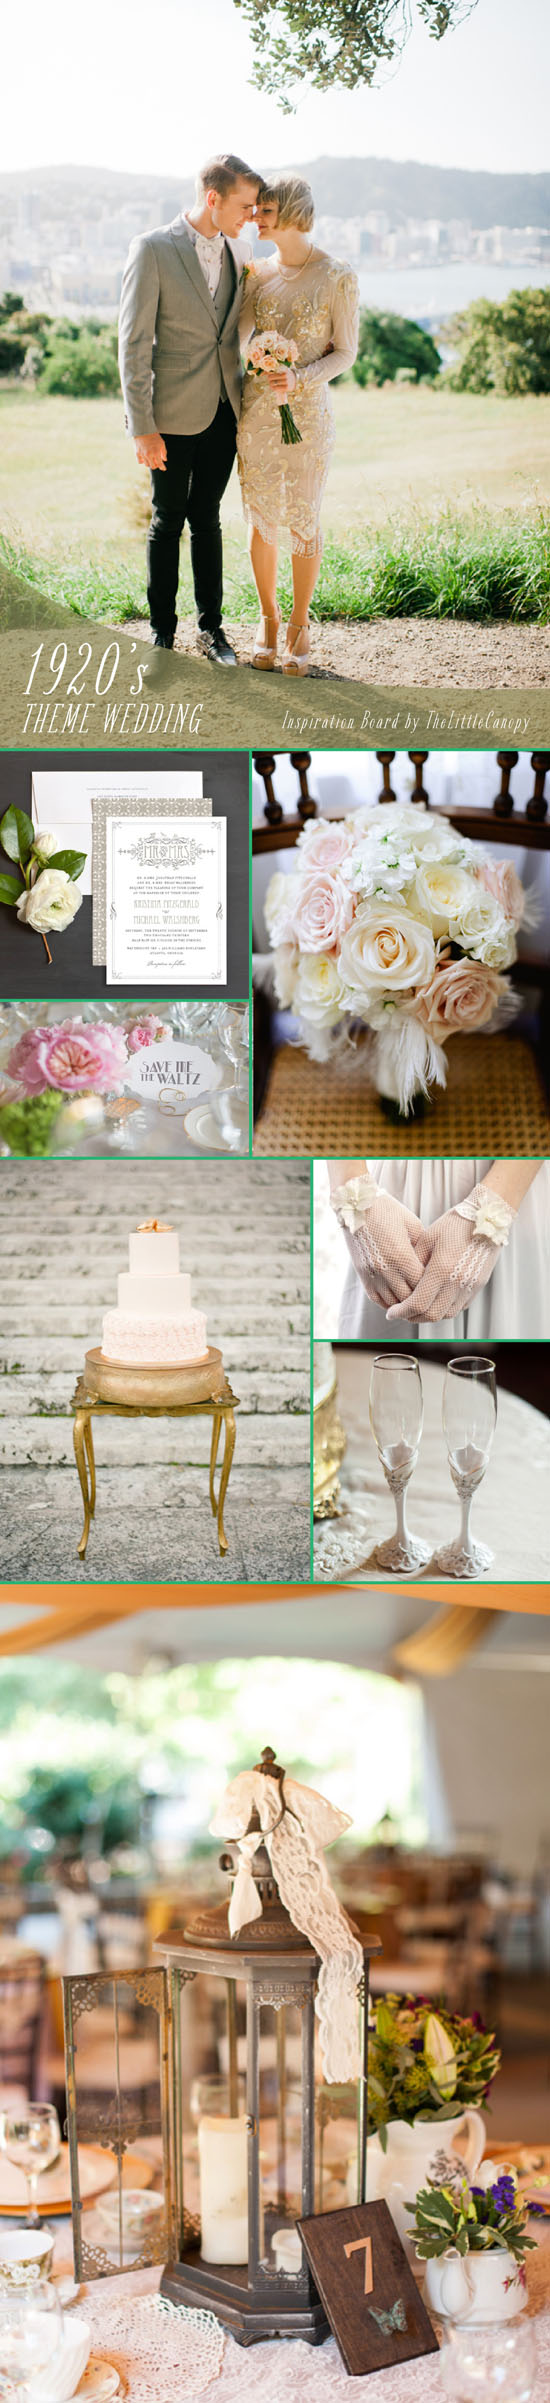 Inspiration Board: 1920's Wedding Theme // For those who are lucky with attics and closets full of vintage goodies, here's an inspiration board that will take you back to the 1920's! With lace, feathers, and gold everywhere, this board is sure to give you some ideas for a spectacular 1920's theme wedding! Enjoy!